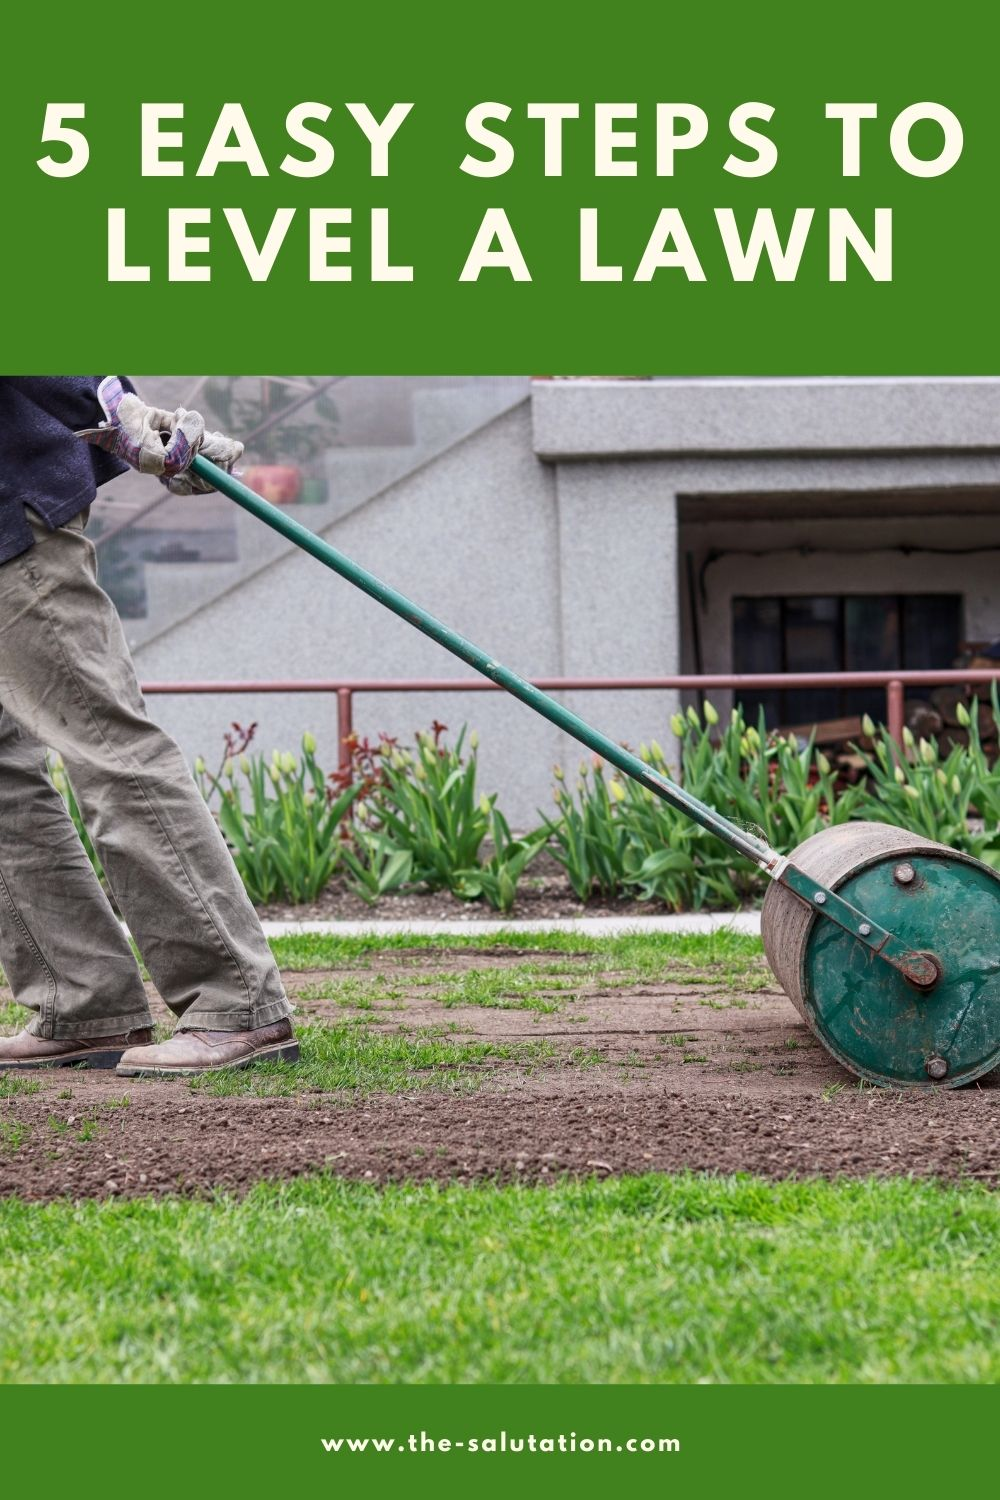 5 Easy Steps to Level a Lawn 2